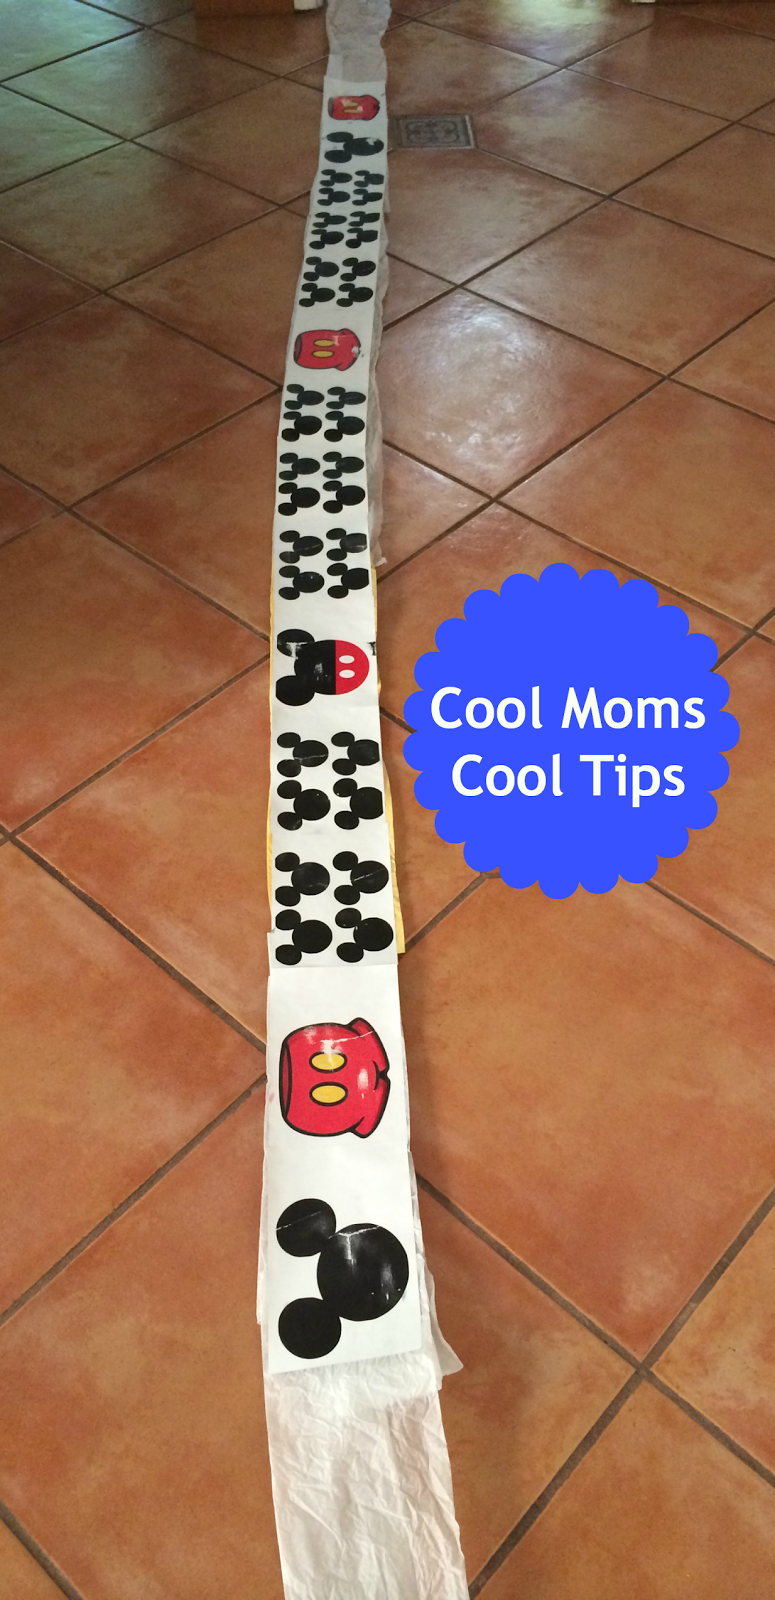 cool moms cool tips finish line ribbon for a race